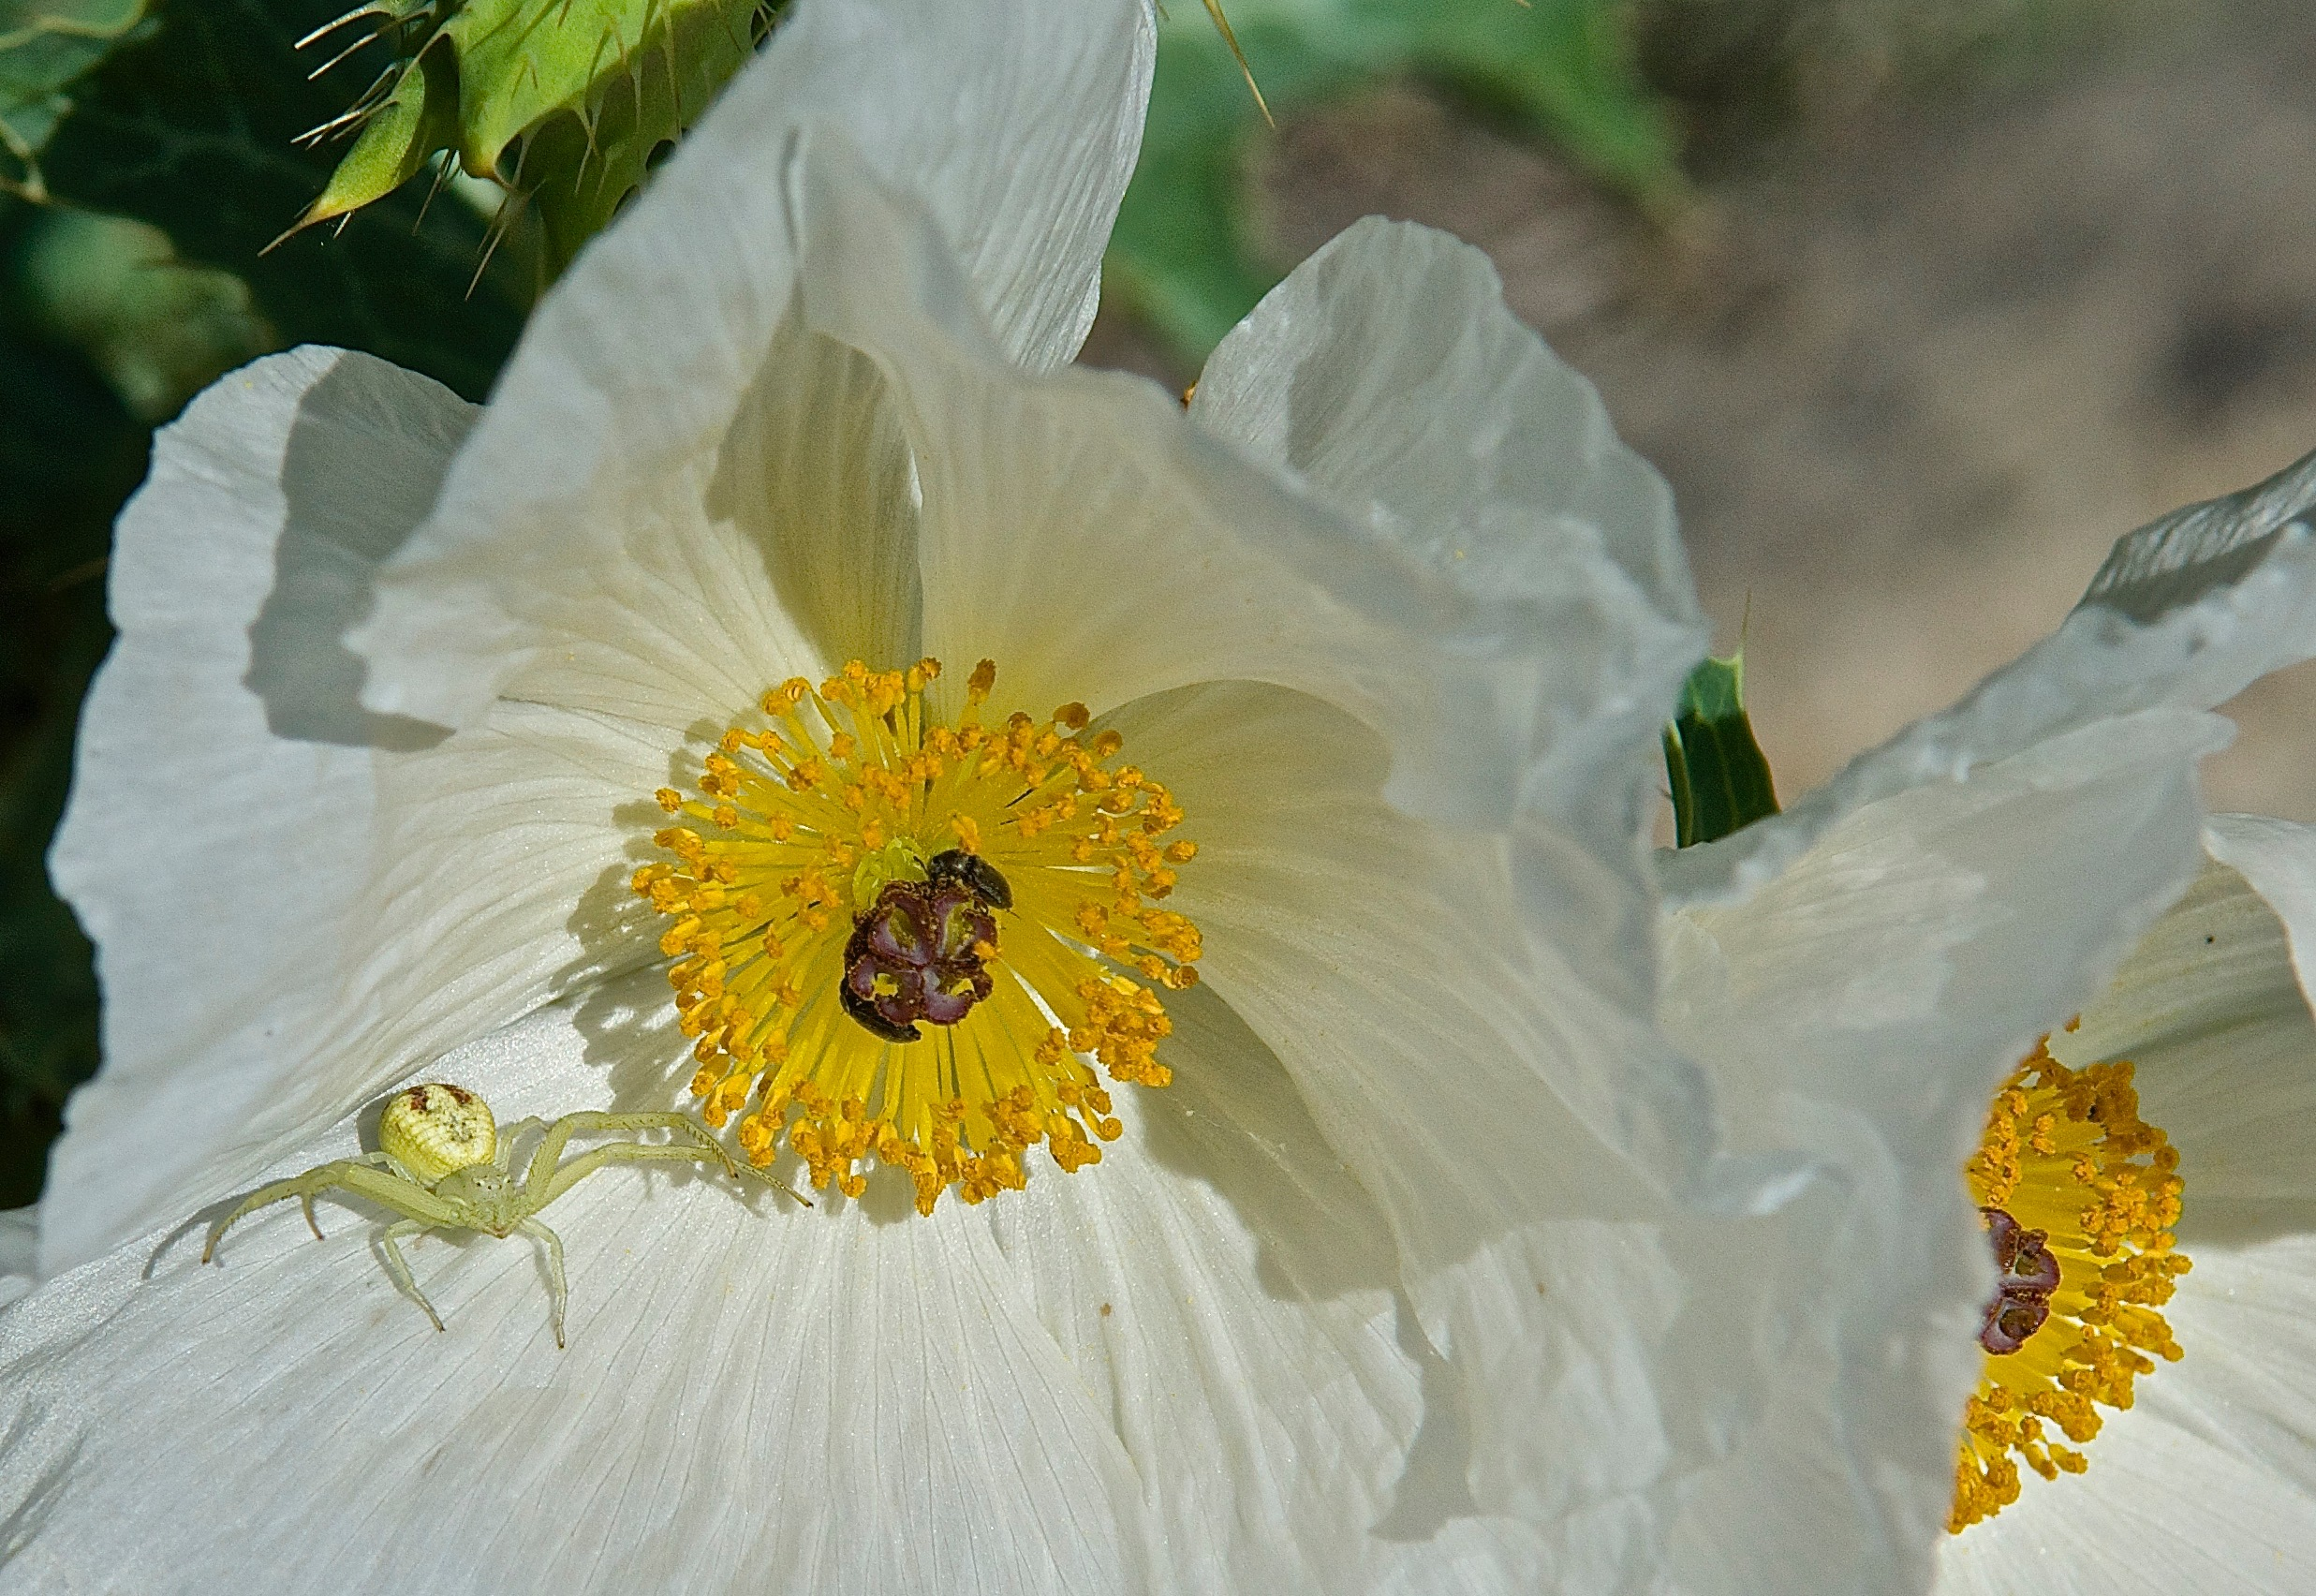 Flower Spider on a Prickly Poppy